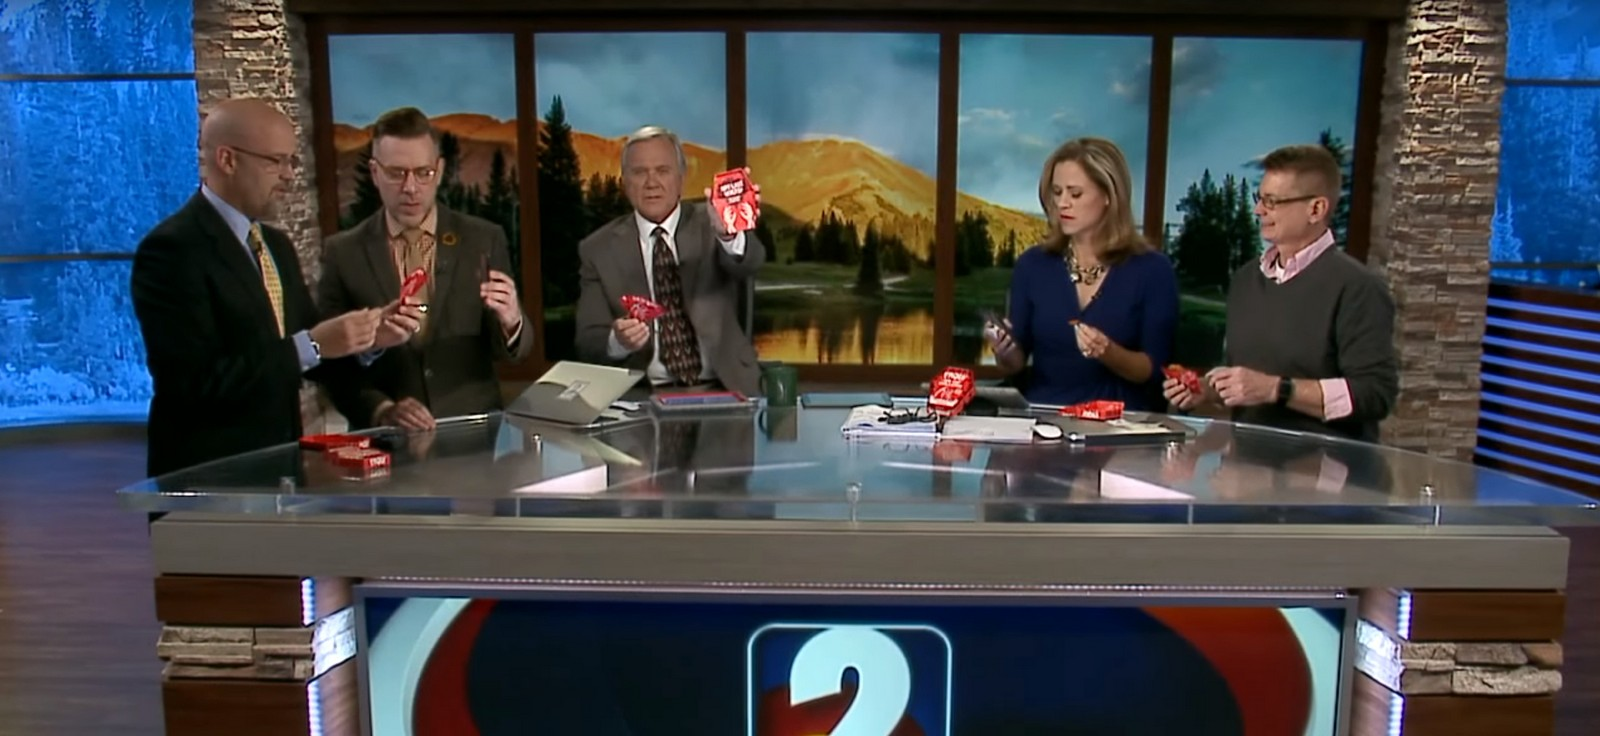 The Channel 2 Denver morning news team decided to try the world's hottest chip, The California Reaper Madness chip.